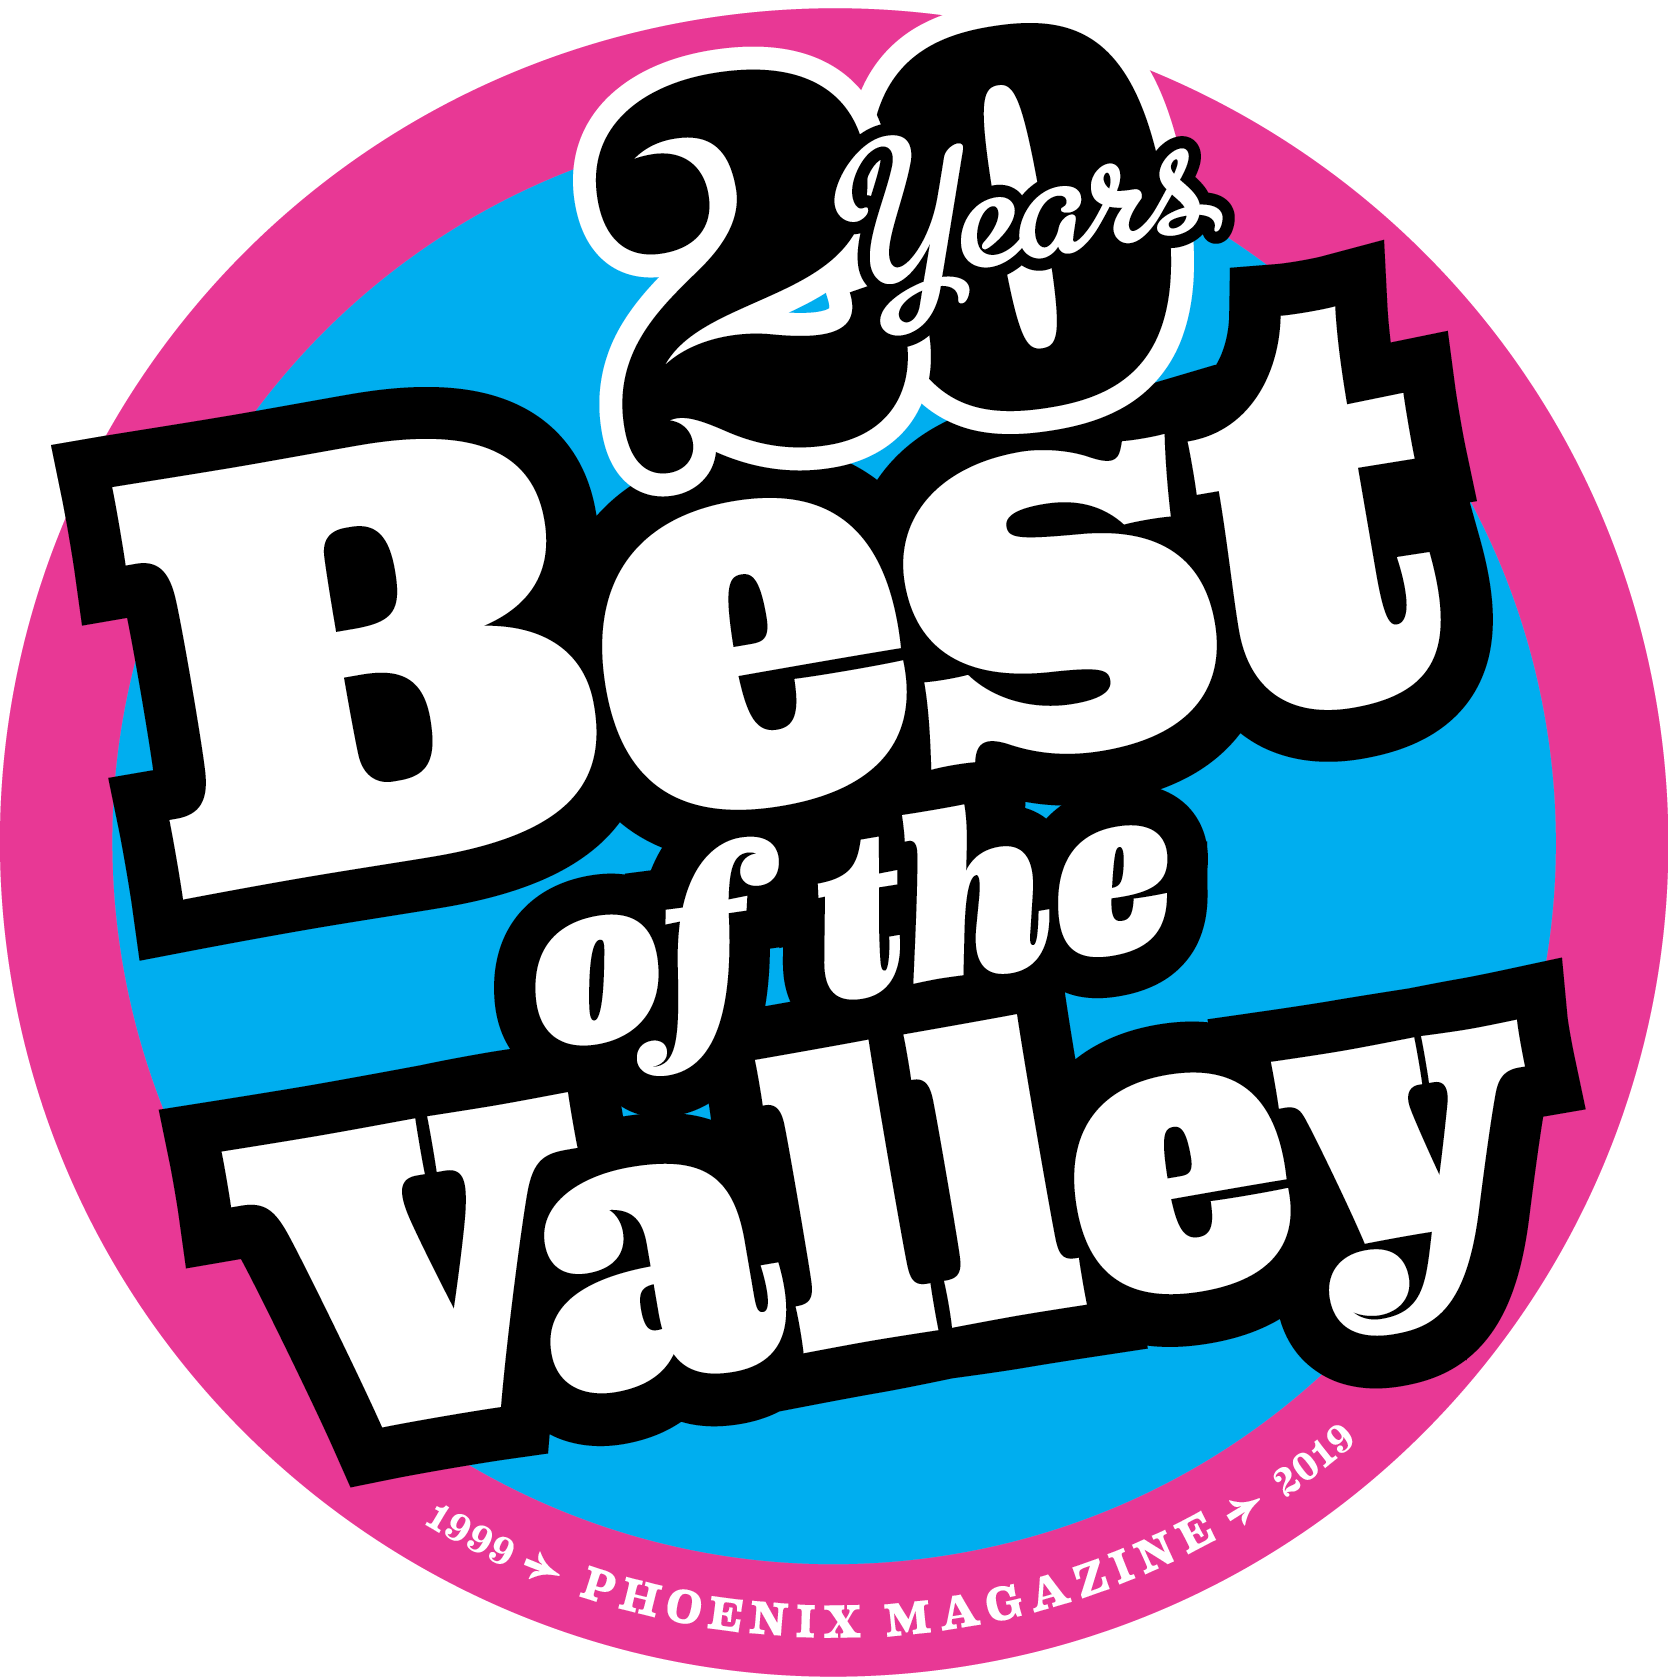 20 Years best of the Valley